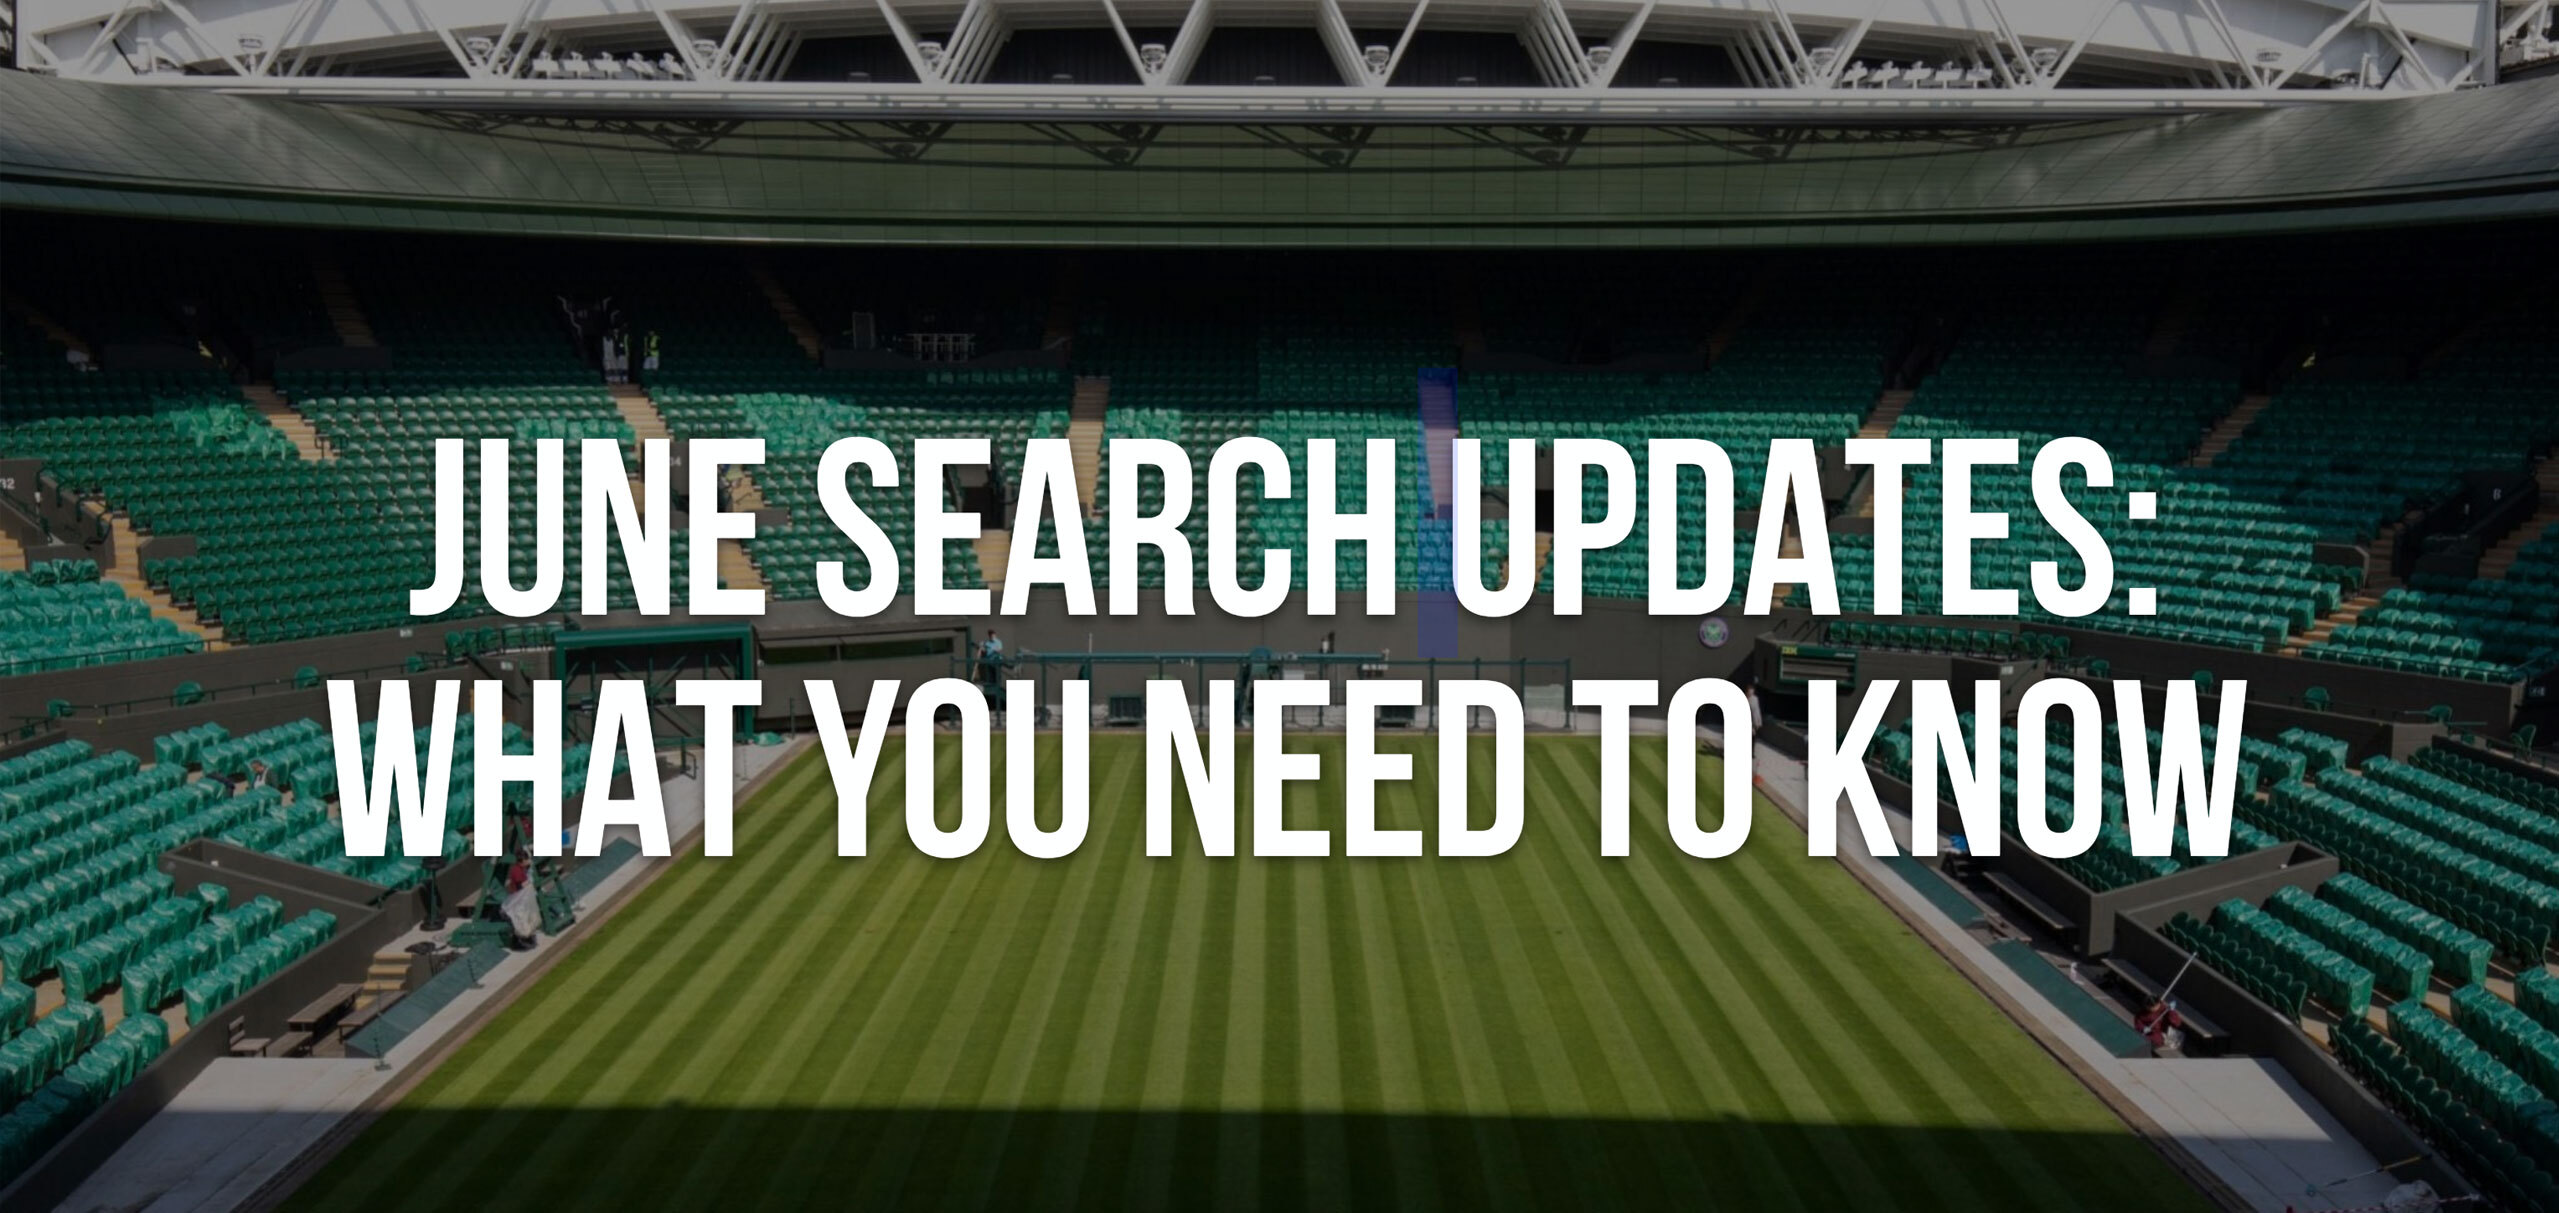 June Search Updates Blog